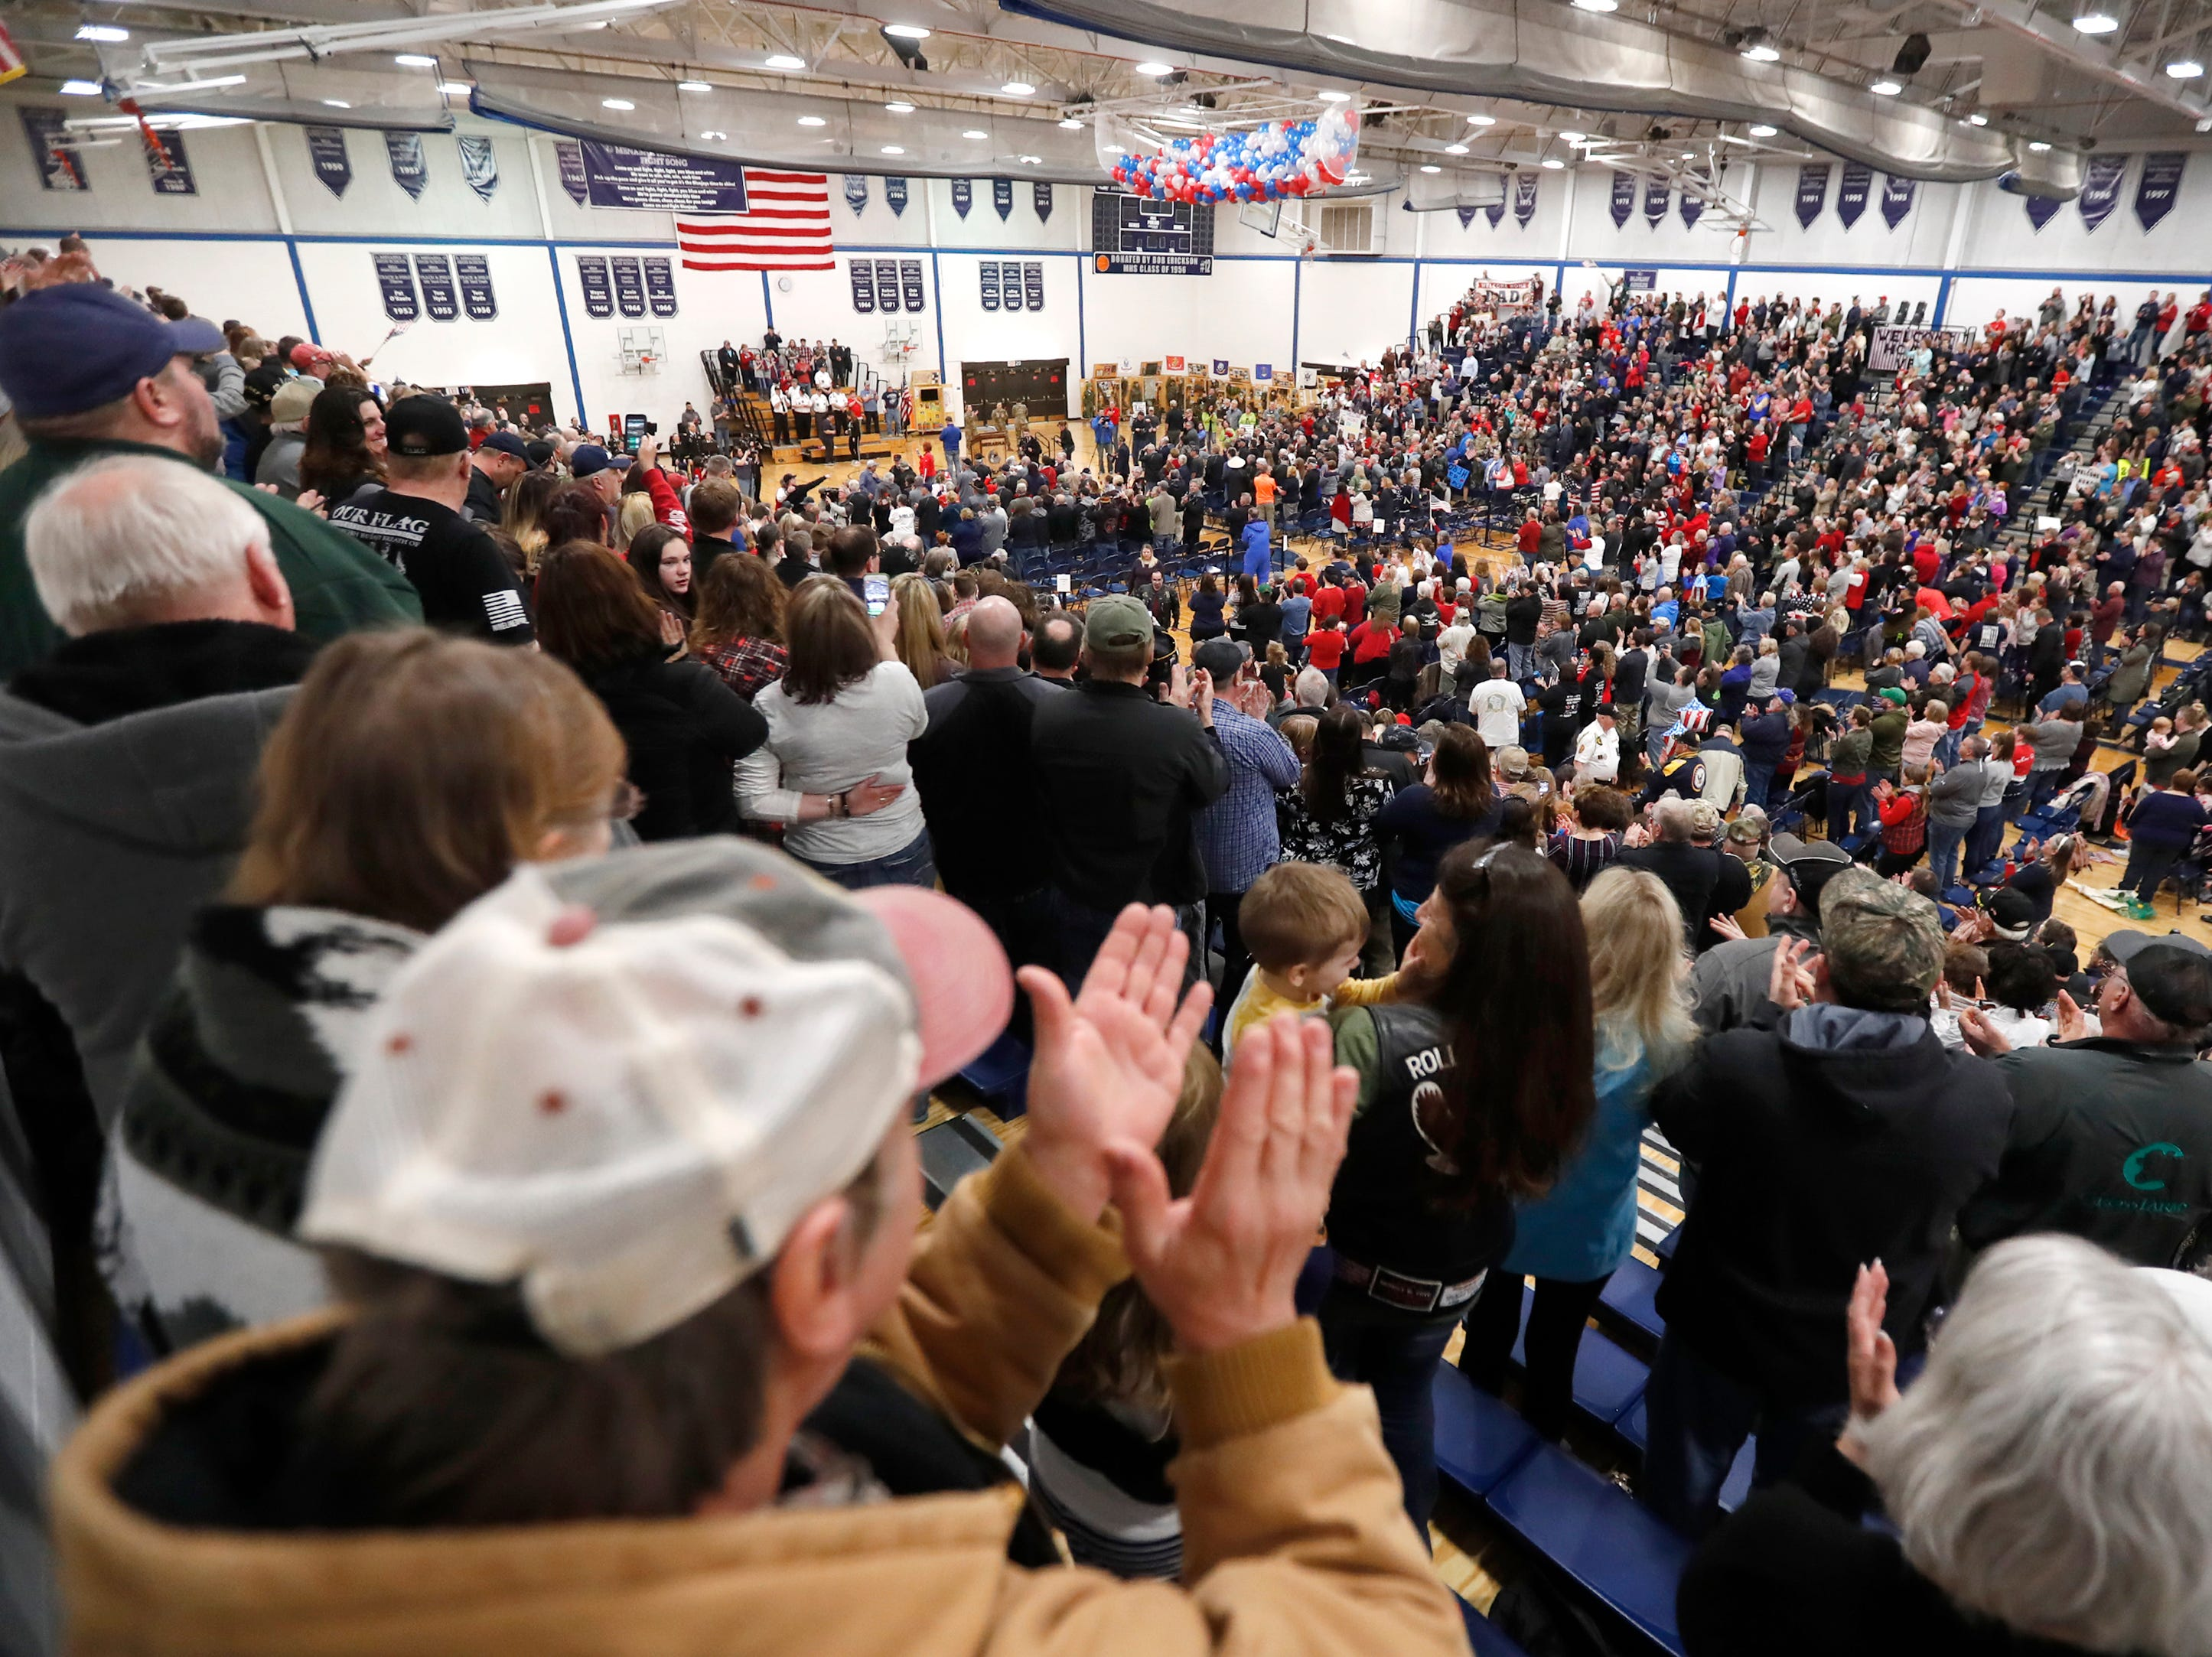 A full gym applauds veterans during the Old Glory Honor Flight-Return to Nam welcome home Saturday, March 9, 2019, at Menasha High School in Menasha, Wis. Veterans were greeted by friends, family, the Menasha High School band, and the 484th Army Band.Danny Damiani/USA TODAY NETWORK-Wisconsin